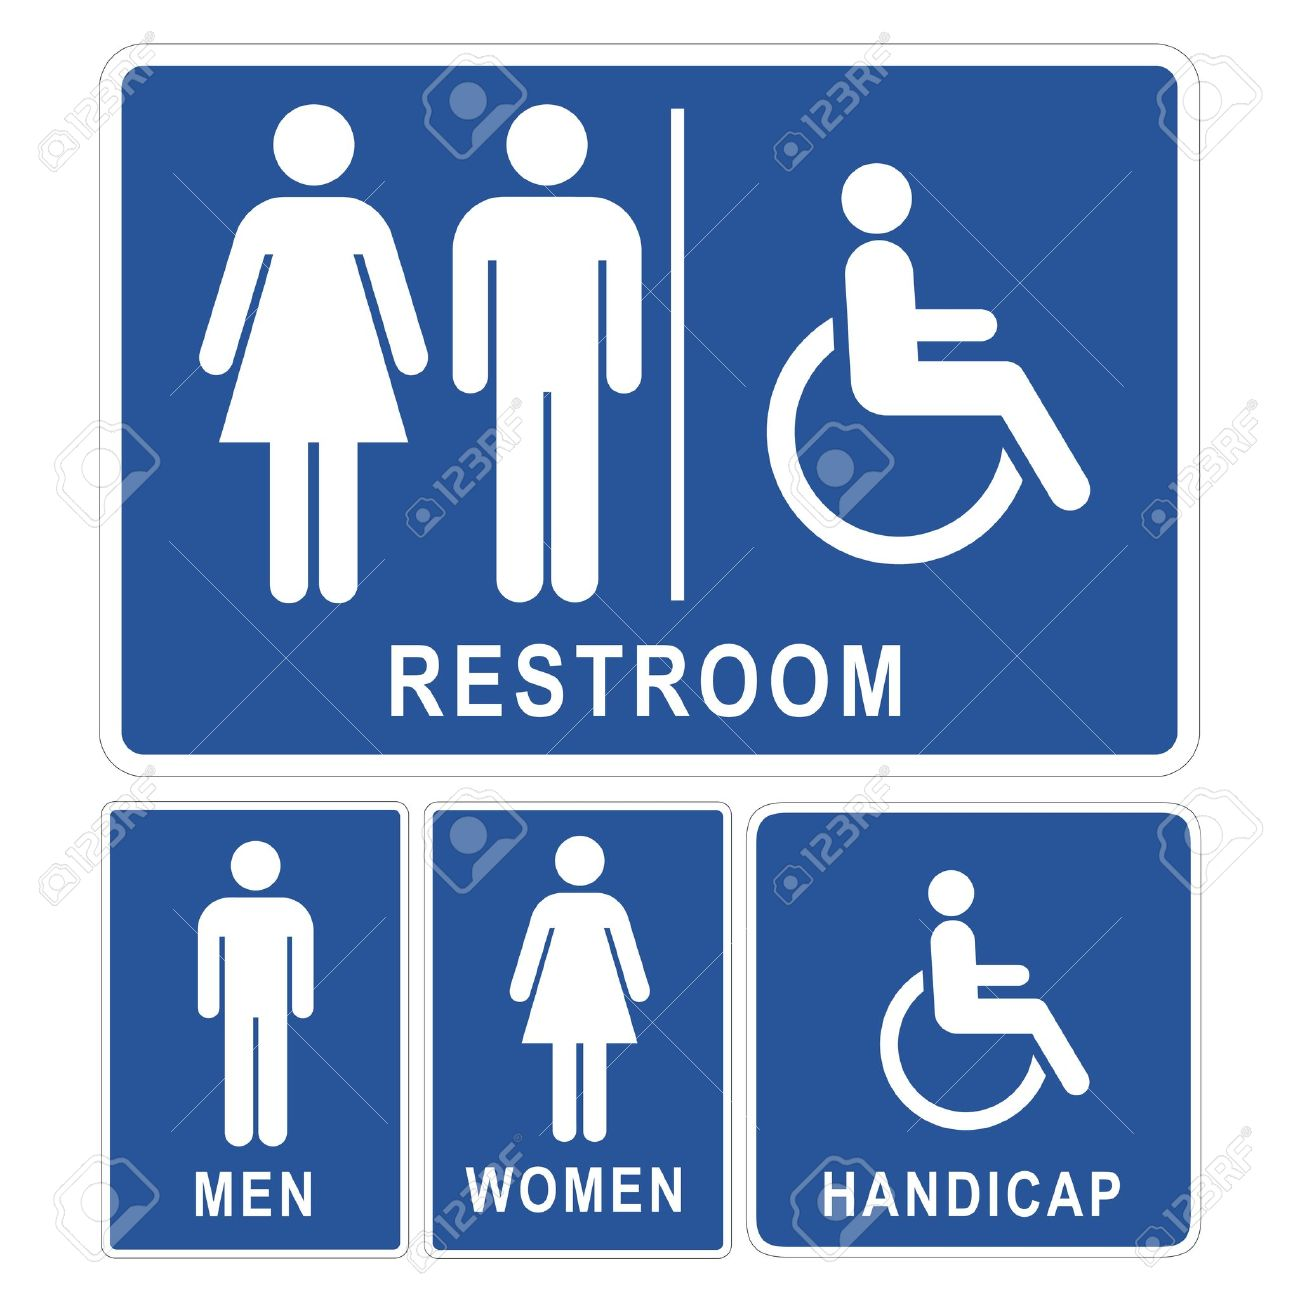 Bathroom Sign Vector Free Download restroom sign royalty free cliparts, vectors, and stock